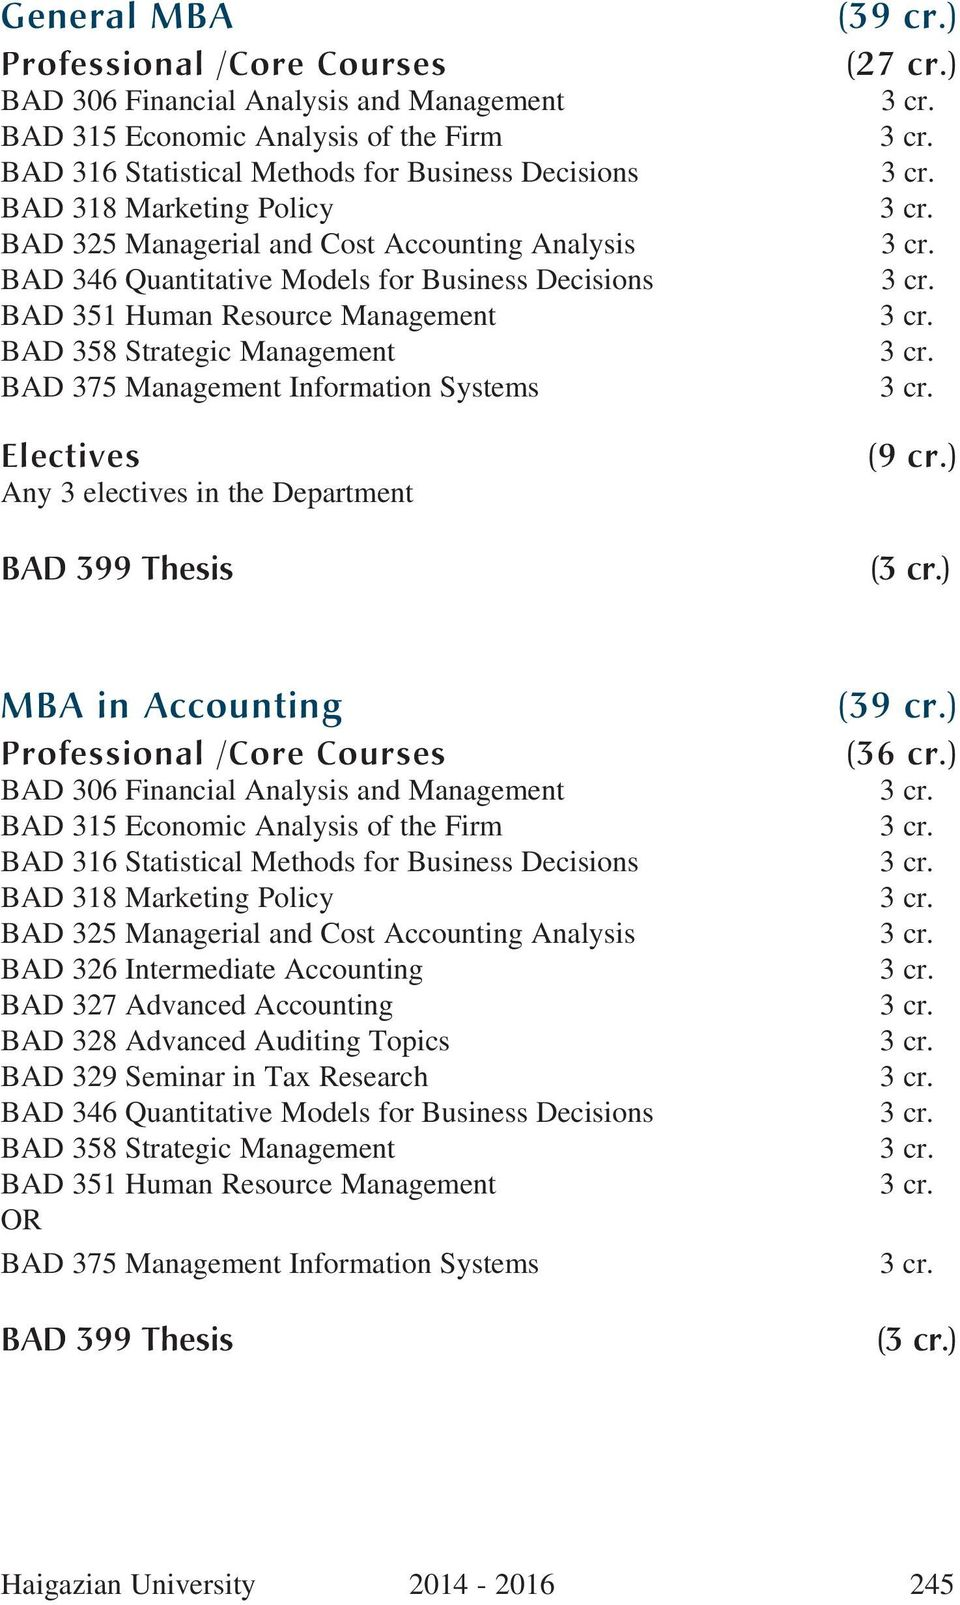 ) () MBA in Accounting Professional /Core Courses BAD 306 Financial Analysis and Management BAD 316 Statistical Methods for Business Decisions BAD 325 Managerial and Cost Accounting Analysis BAD 326